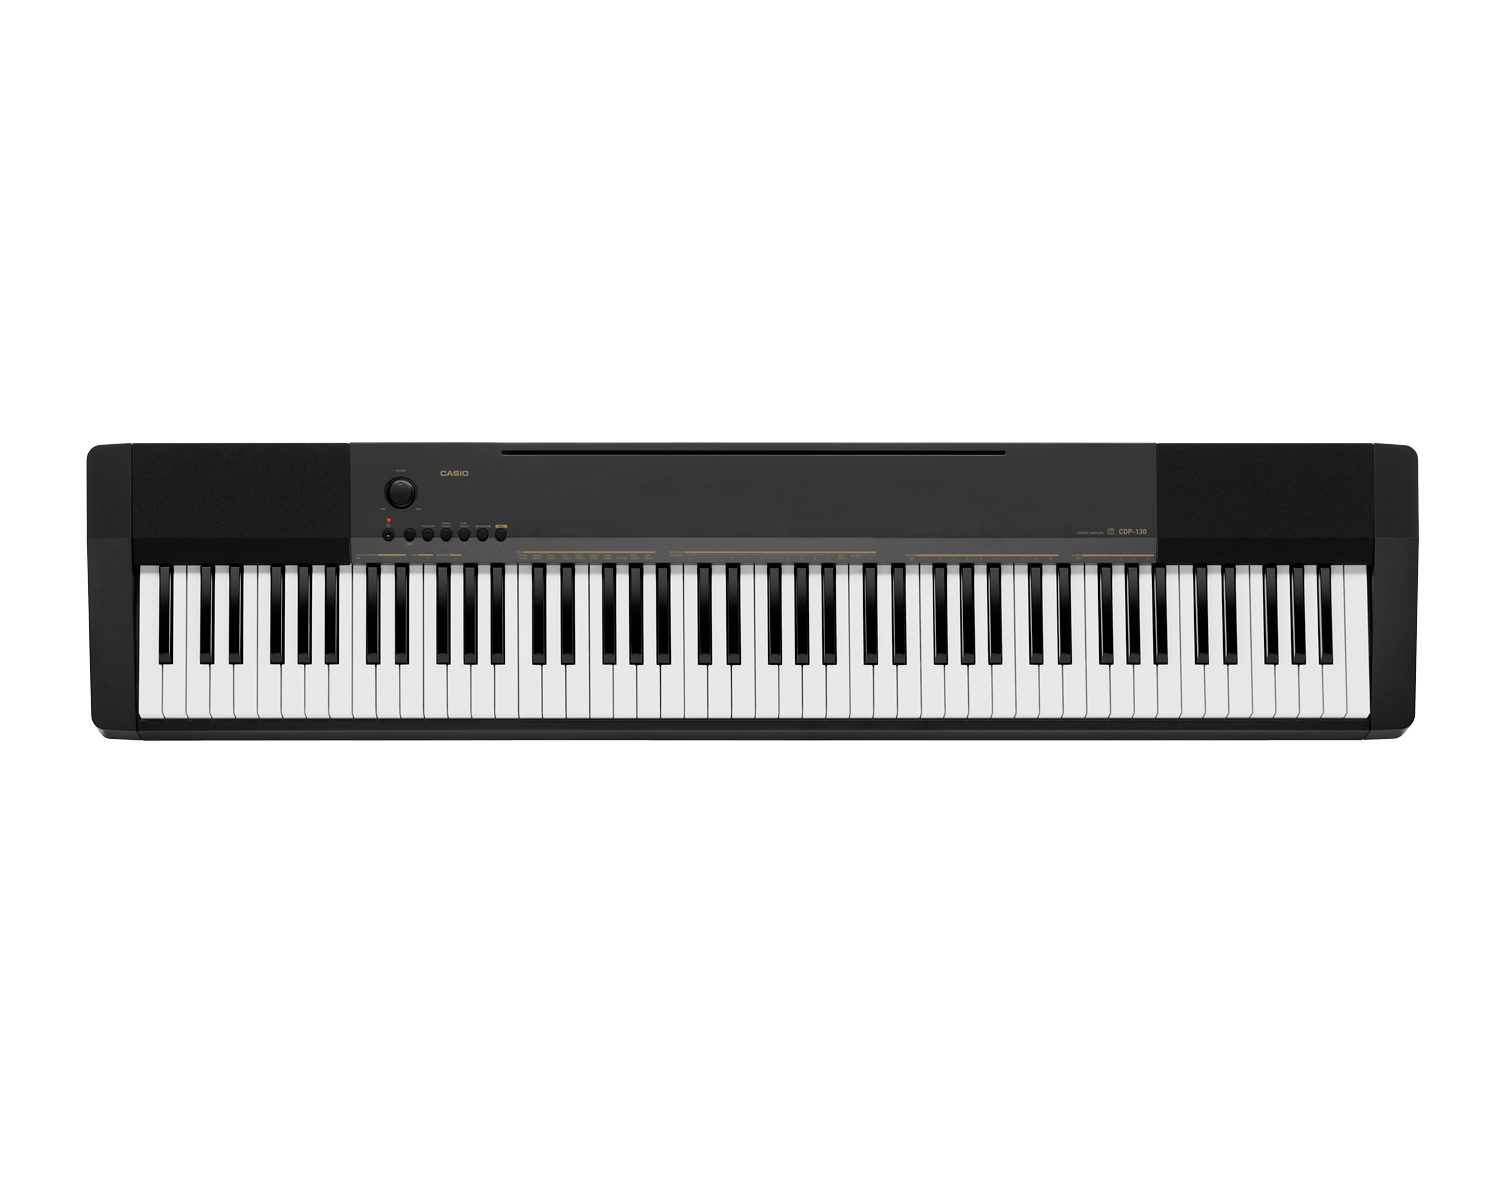 Casio CTK-7600 high grade keyboard image top